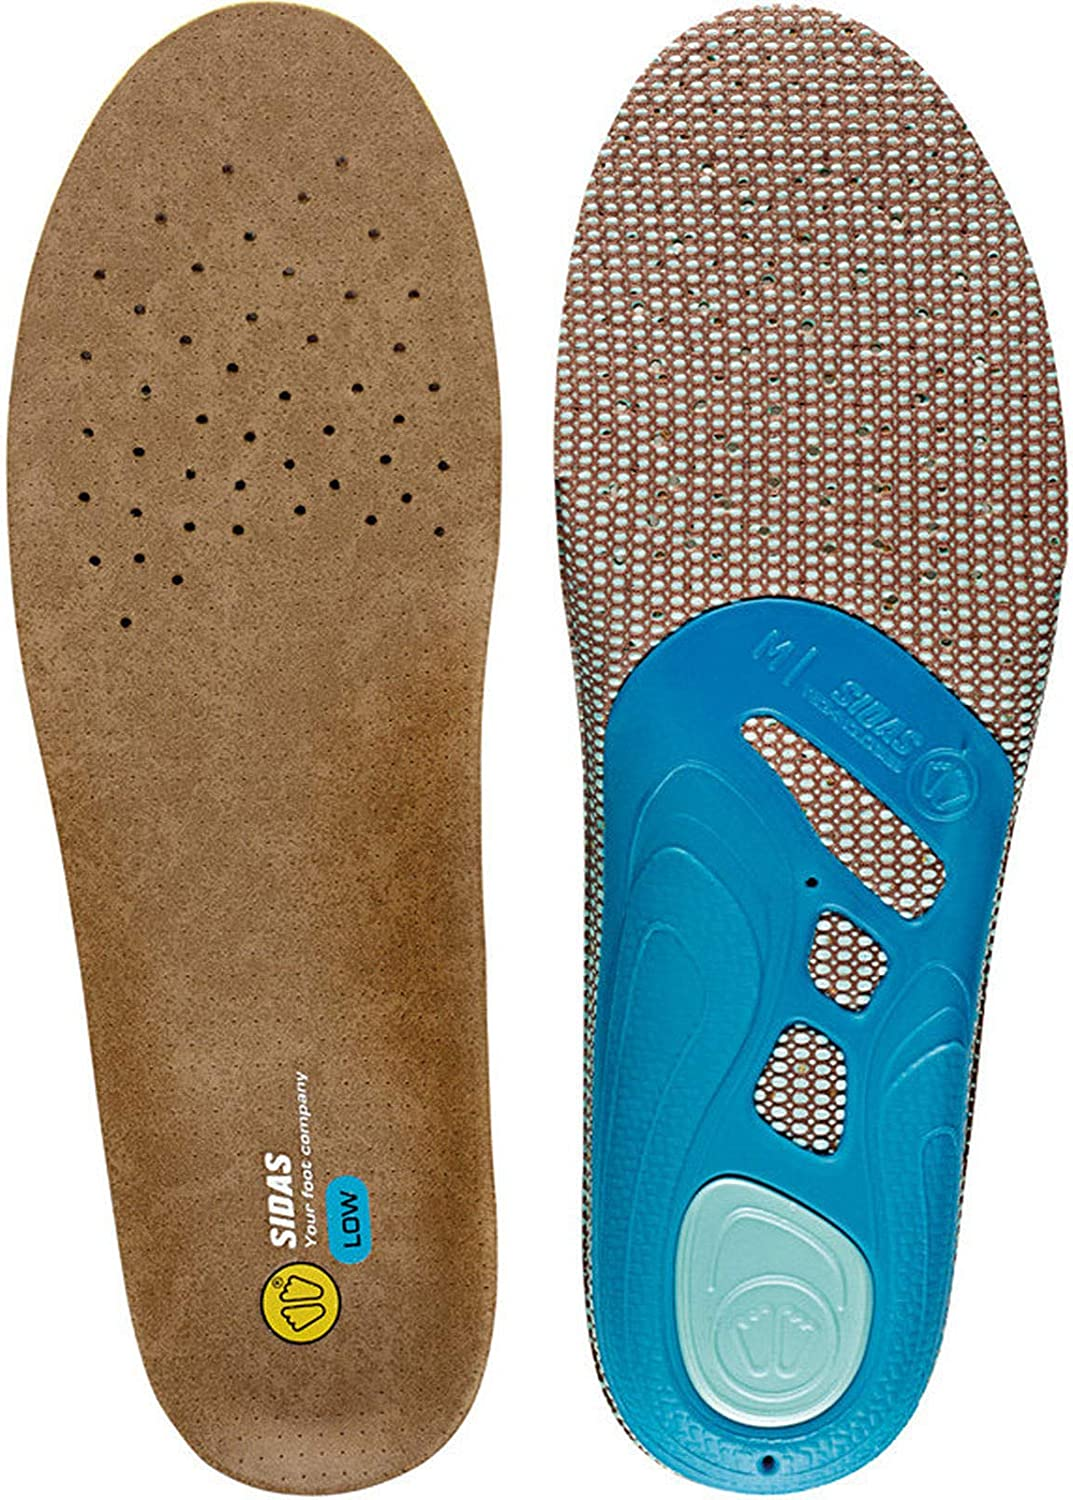 Sidas Outdoor Low Arch Insoles AW20